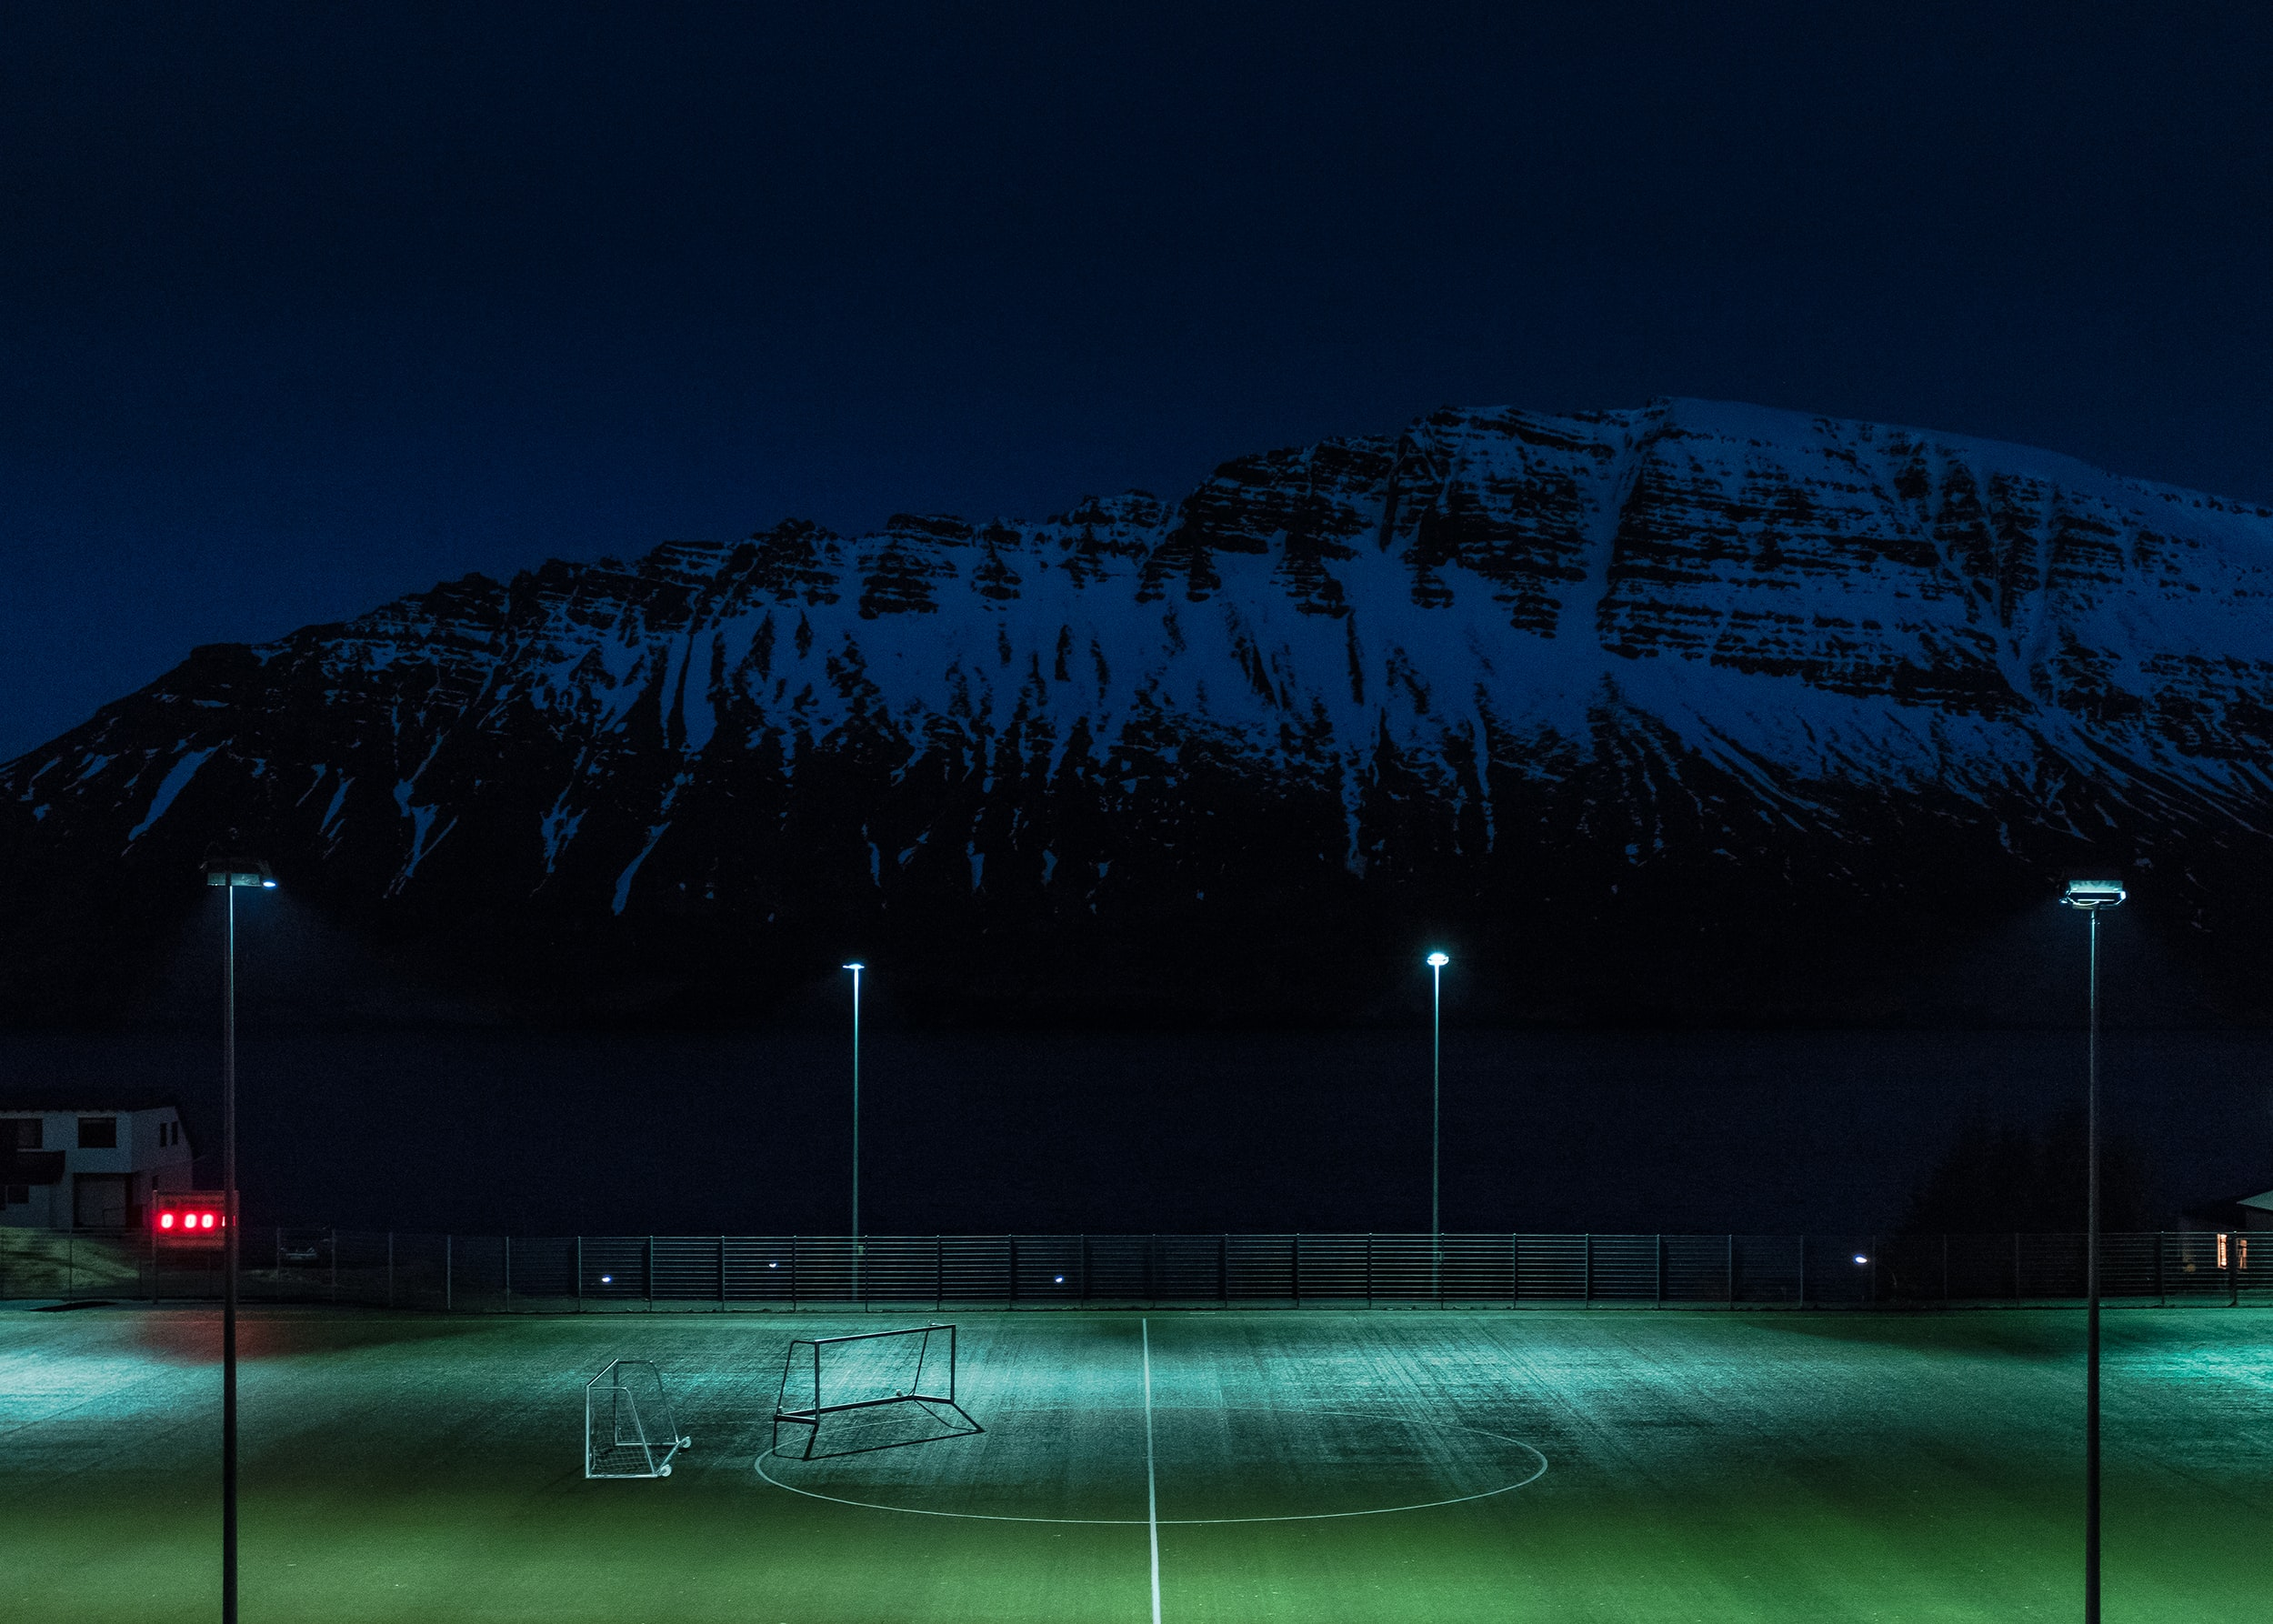 Turf soccer pitch illuminated by floodlights under the snow covered hill at night